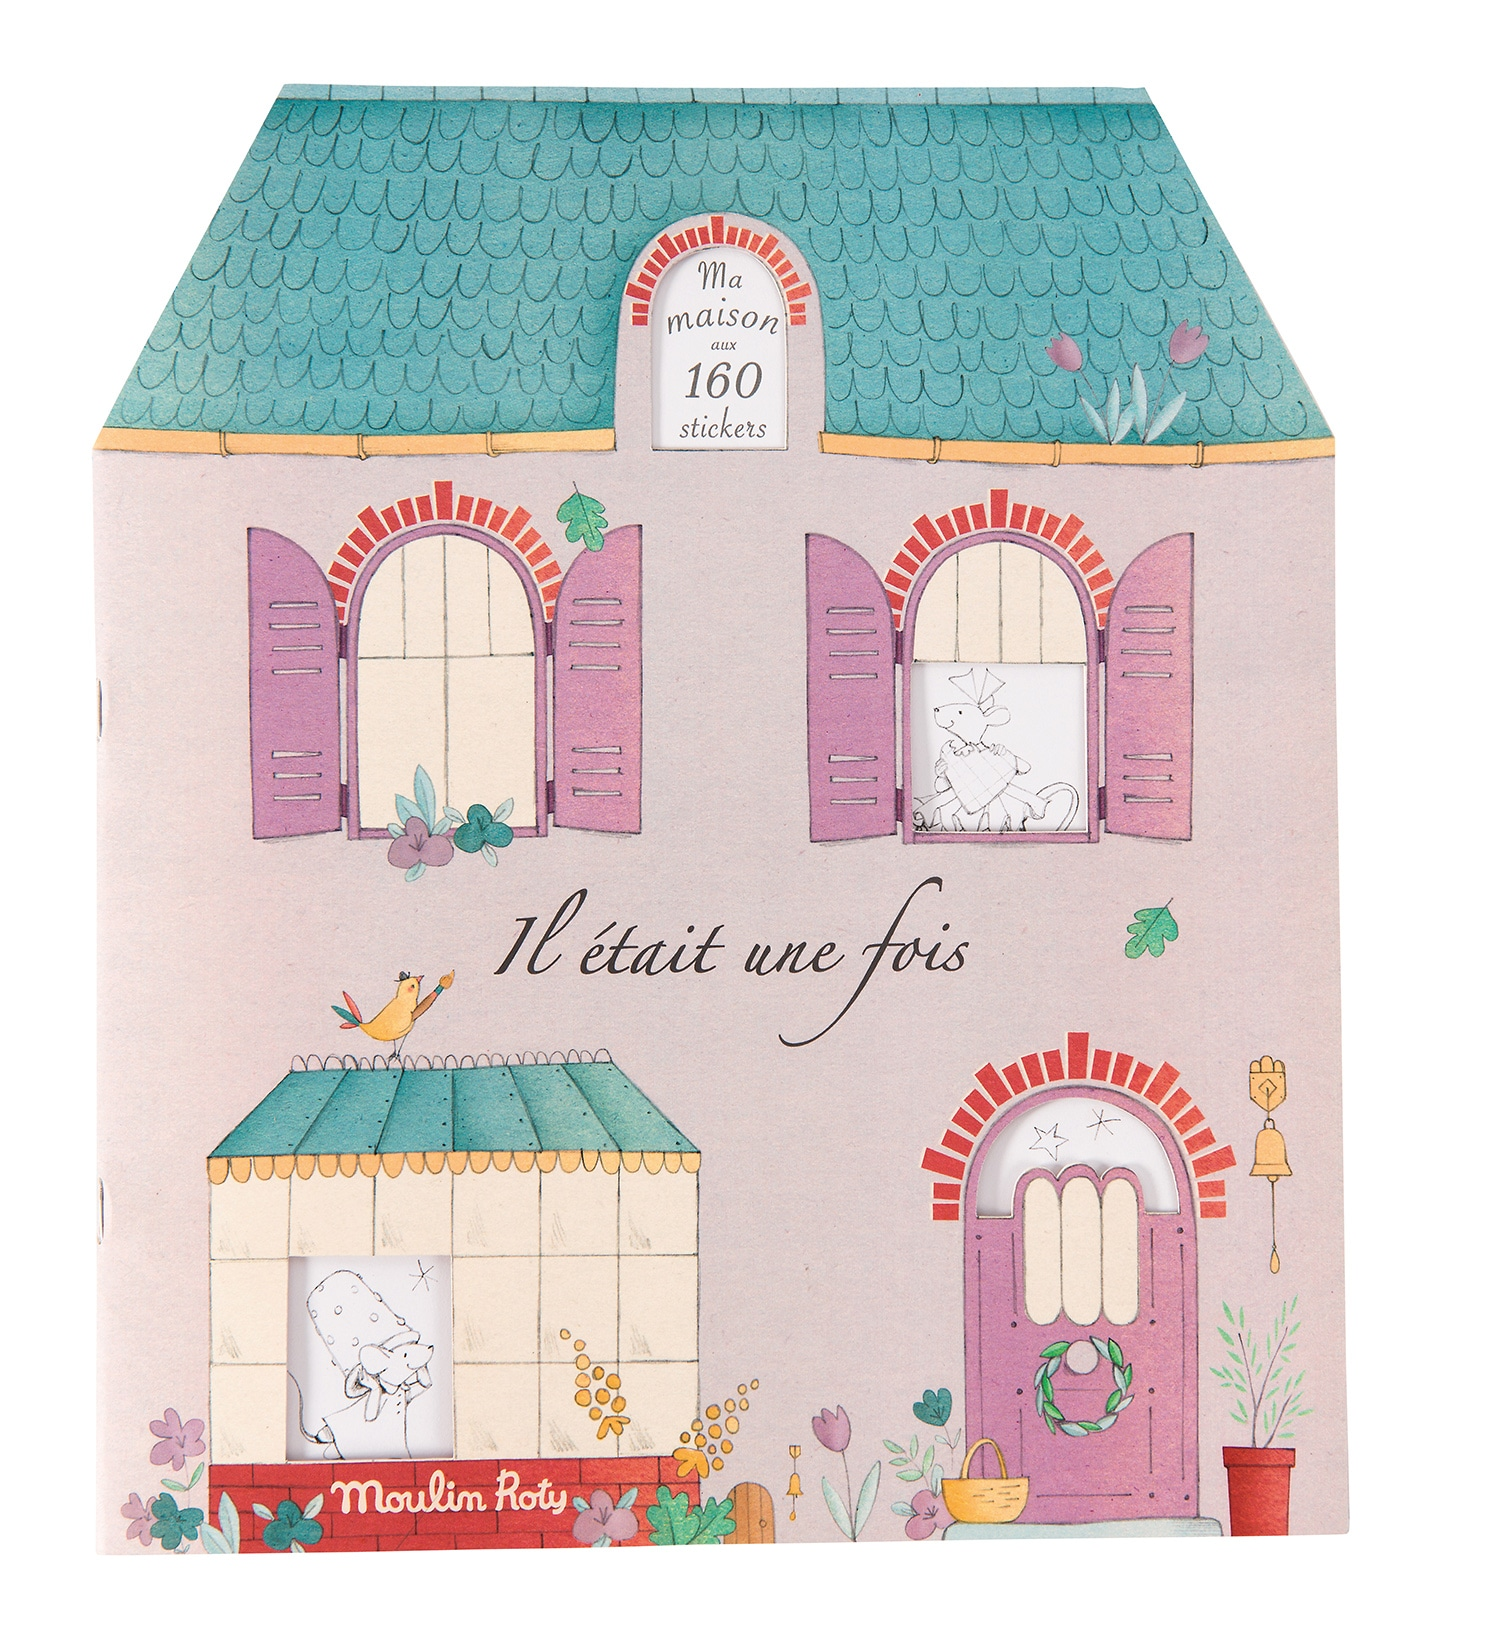 Book in the shape of a house, with 20 pages of stickers - Moulin Roty 711 377